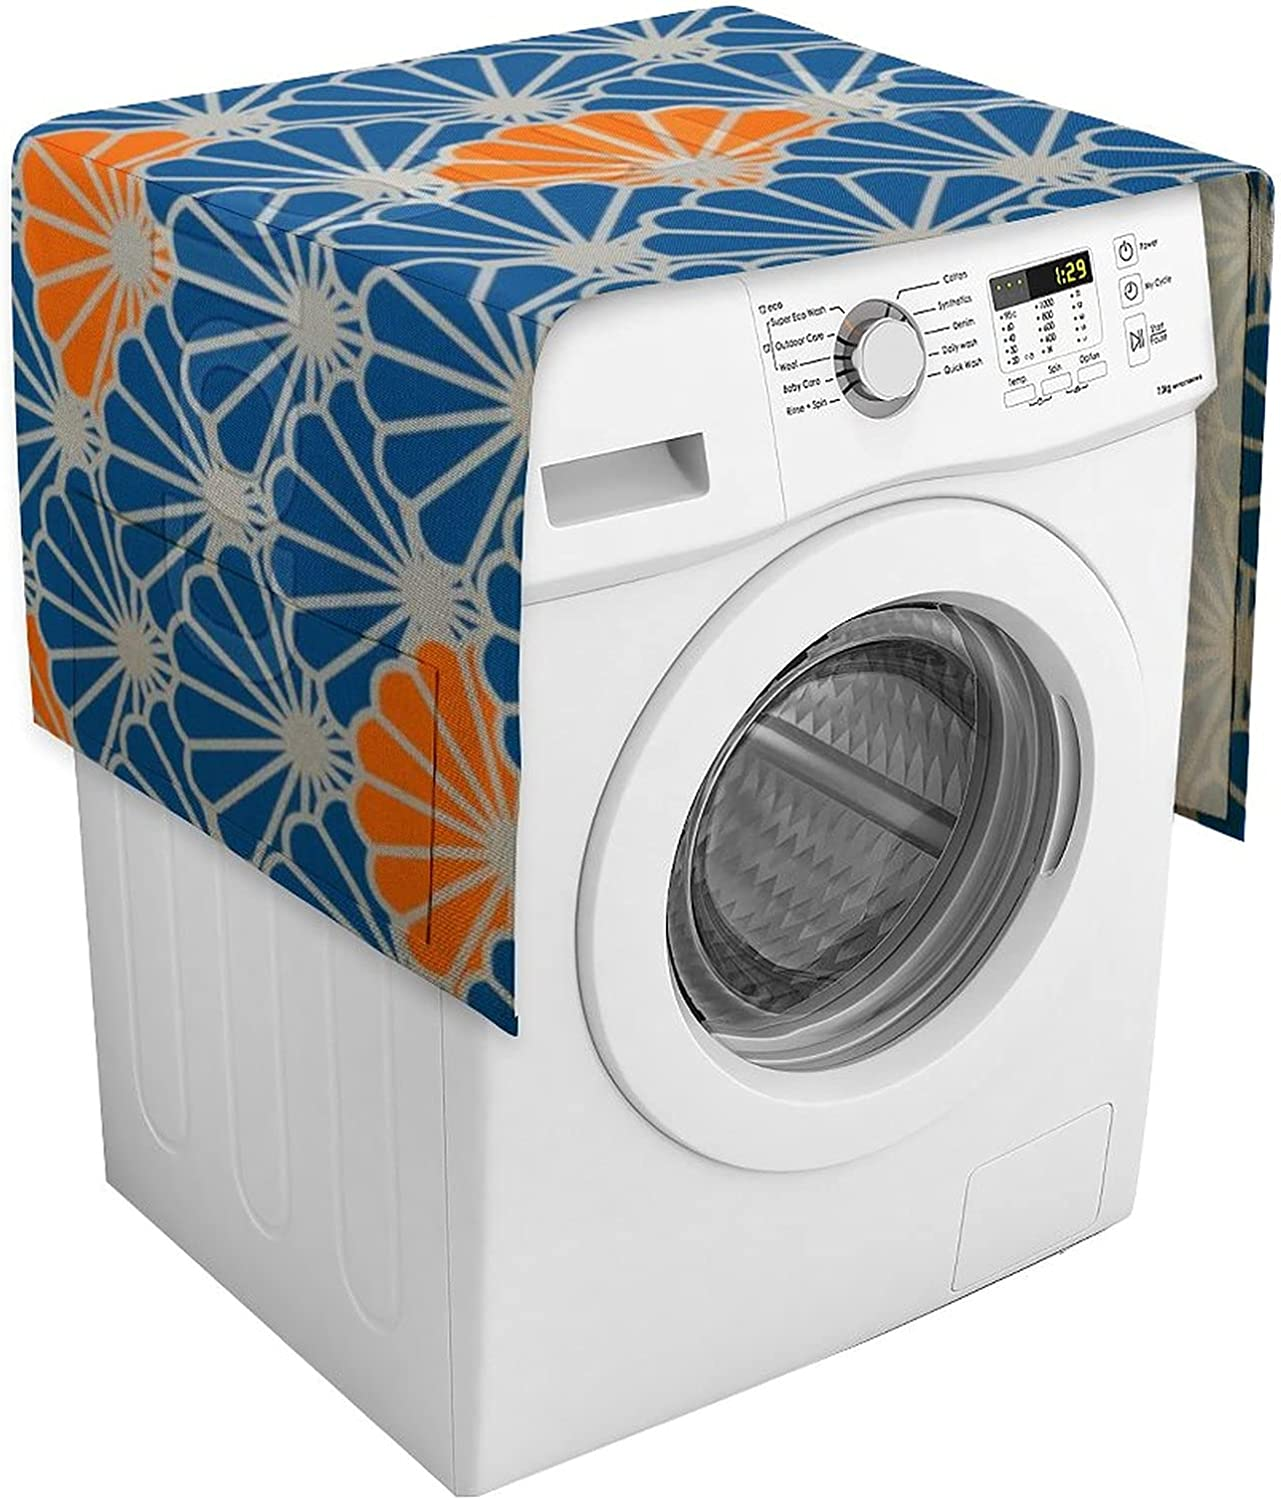 Multi-Purpose Washing Ranking TOP10 Lowest price challenge Machine Covers Appliance Protector Washer